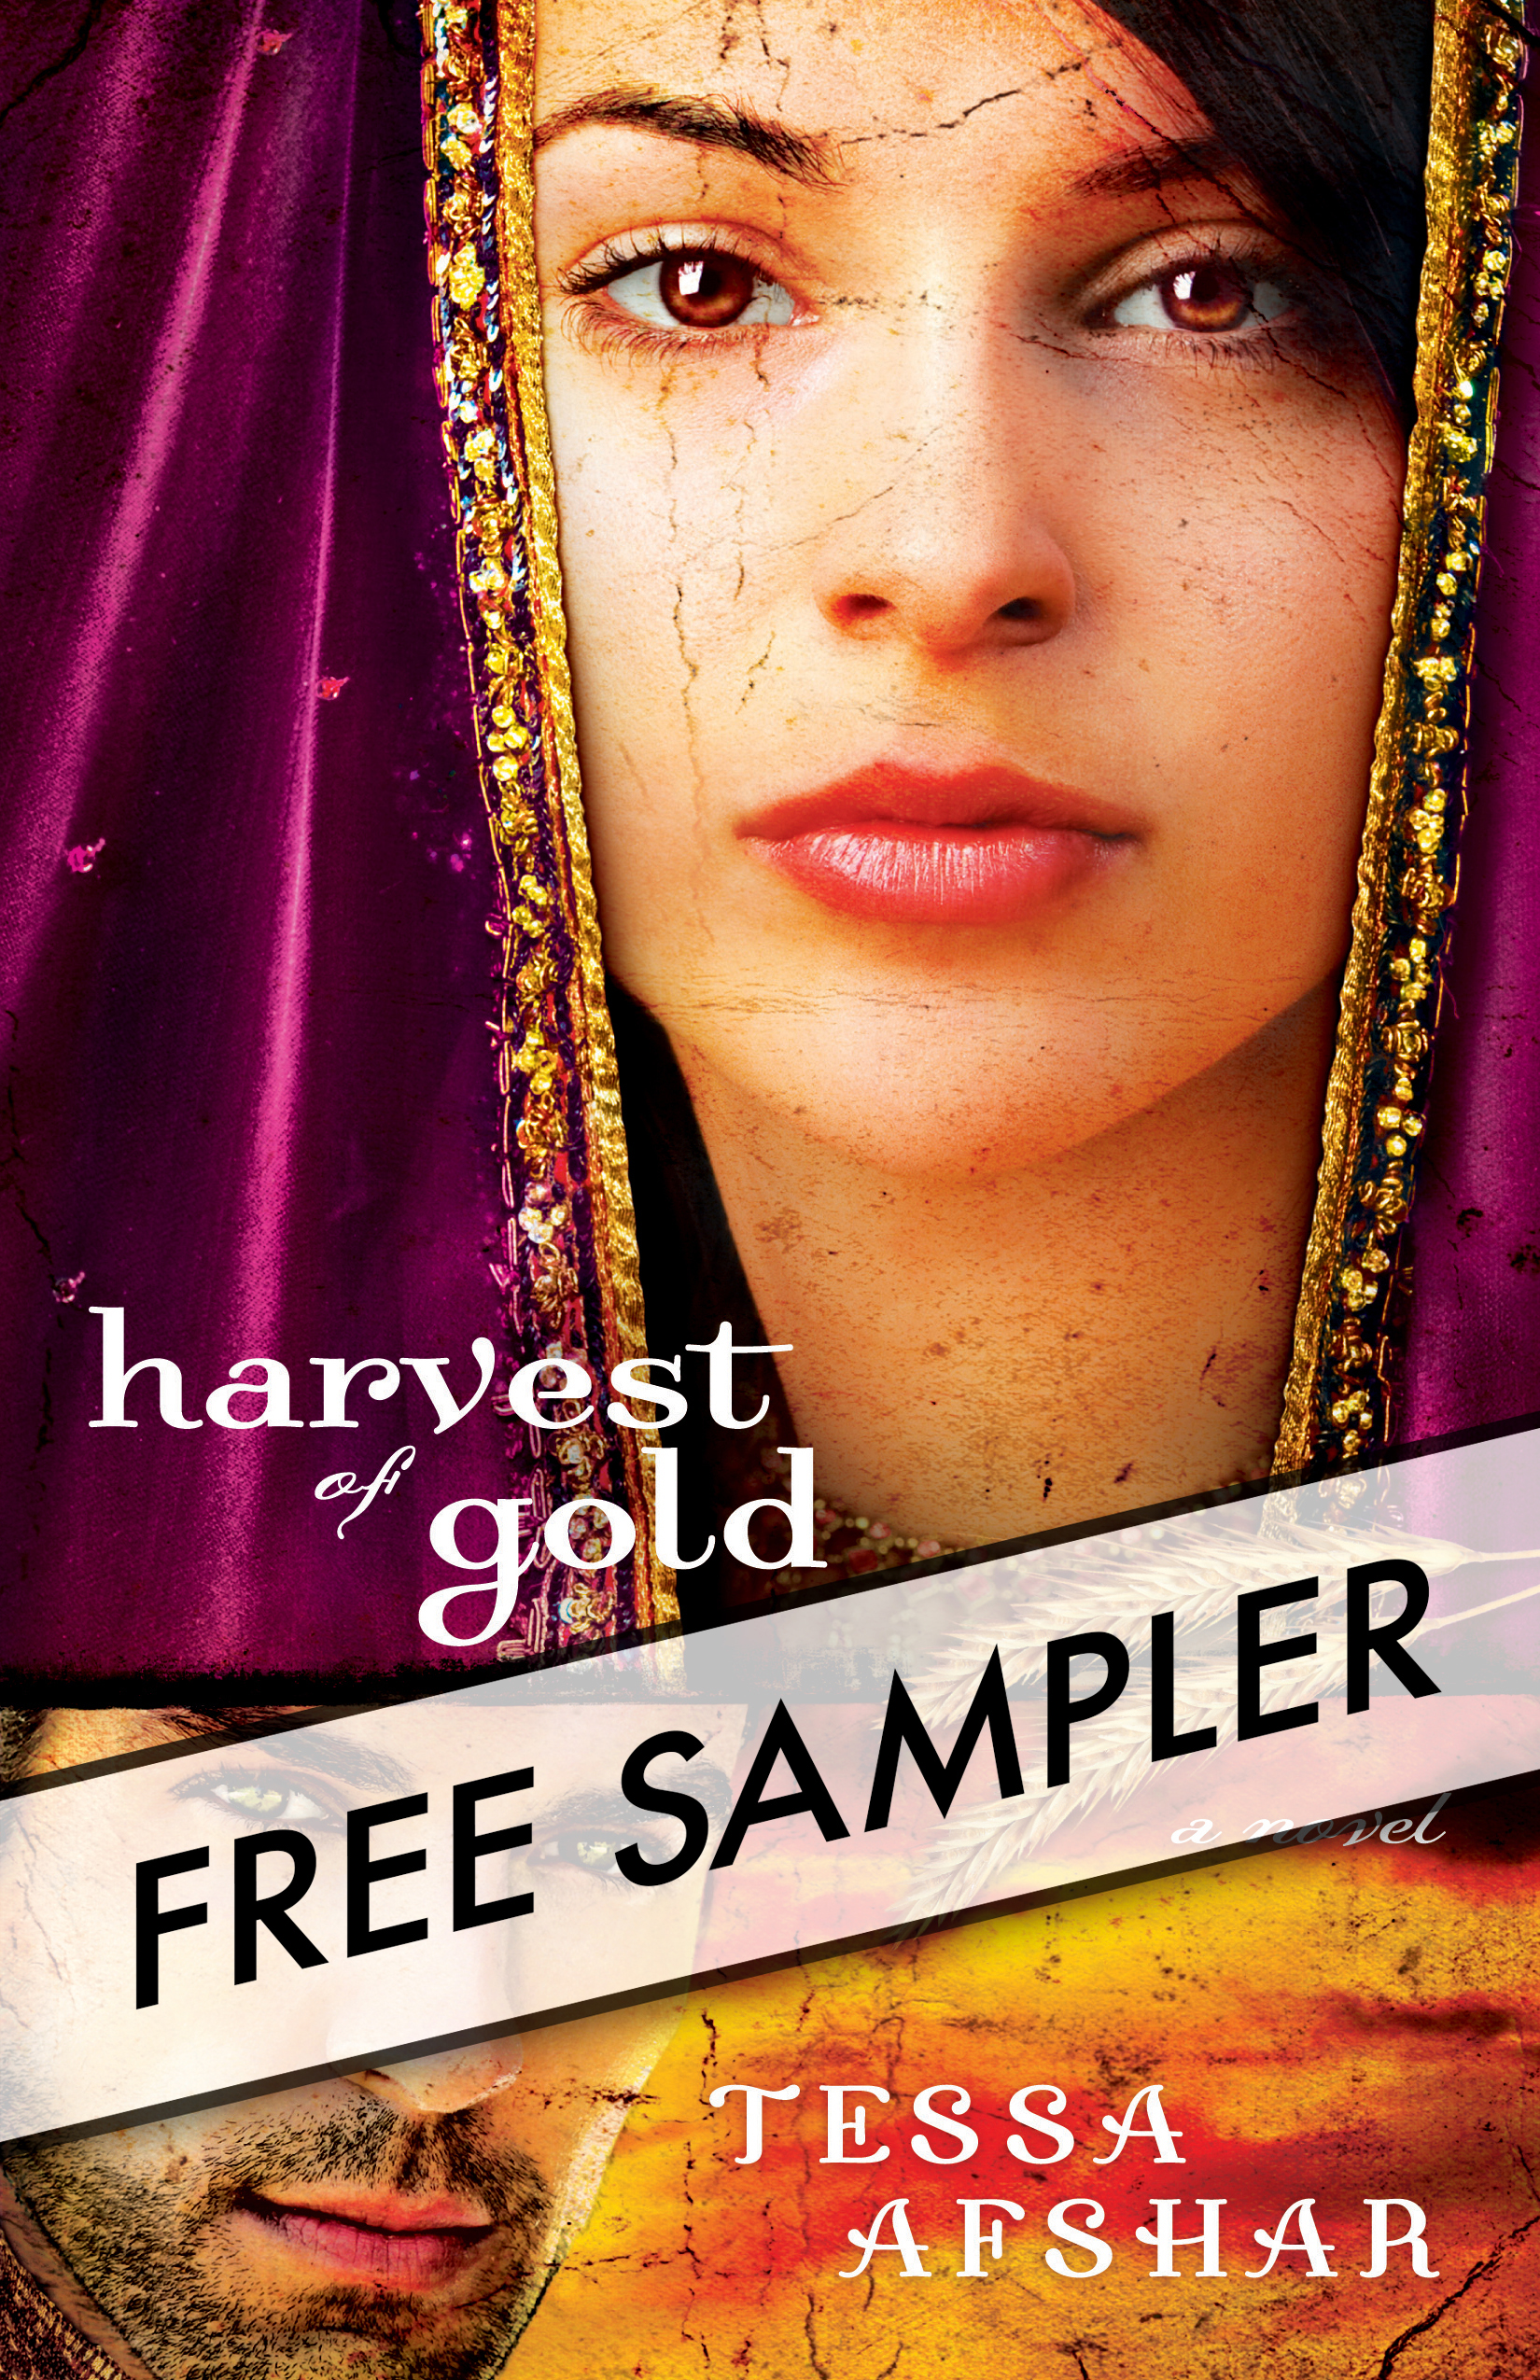 Harvest of Gold SAMPLER